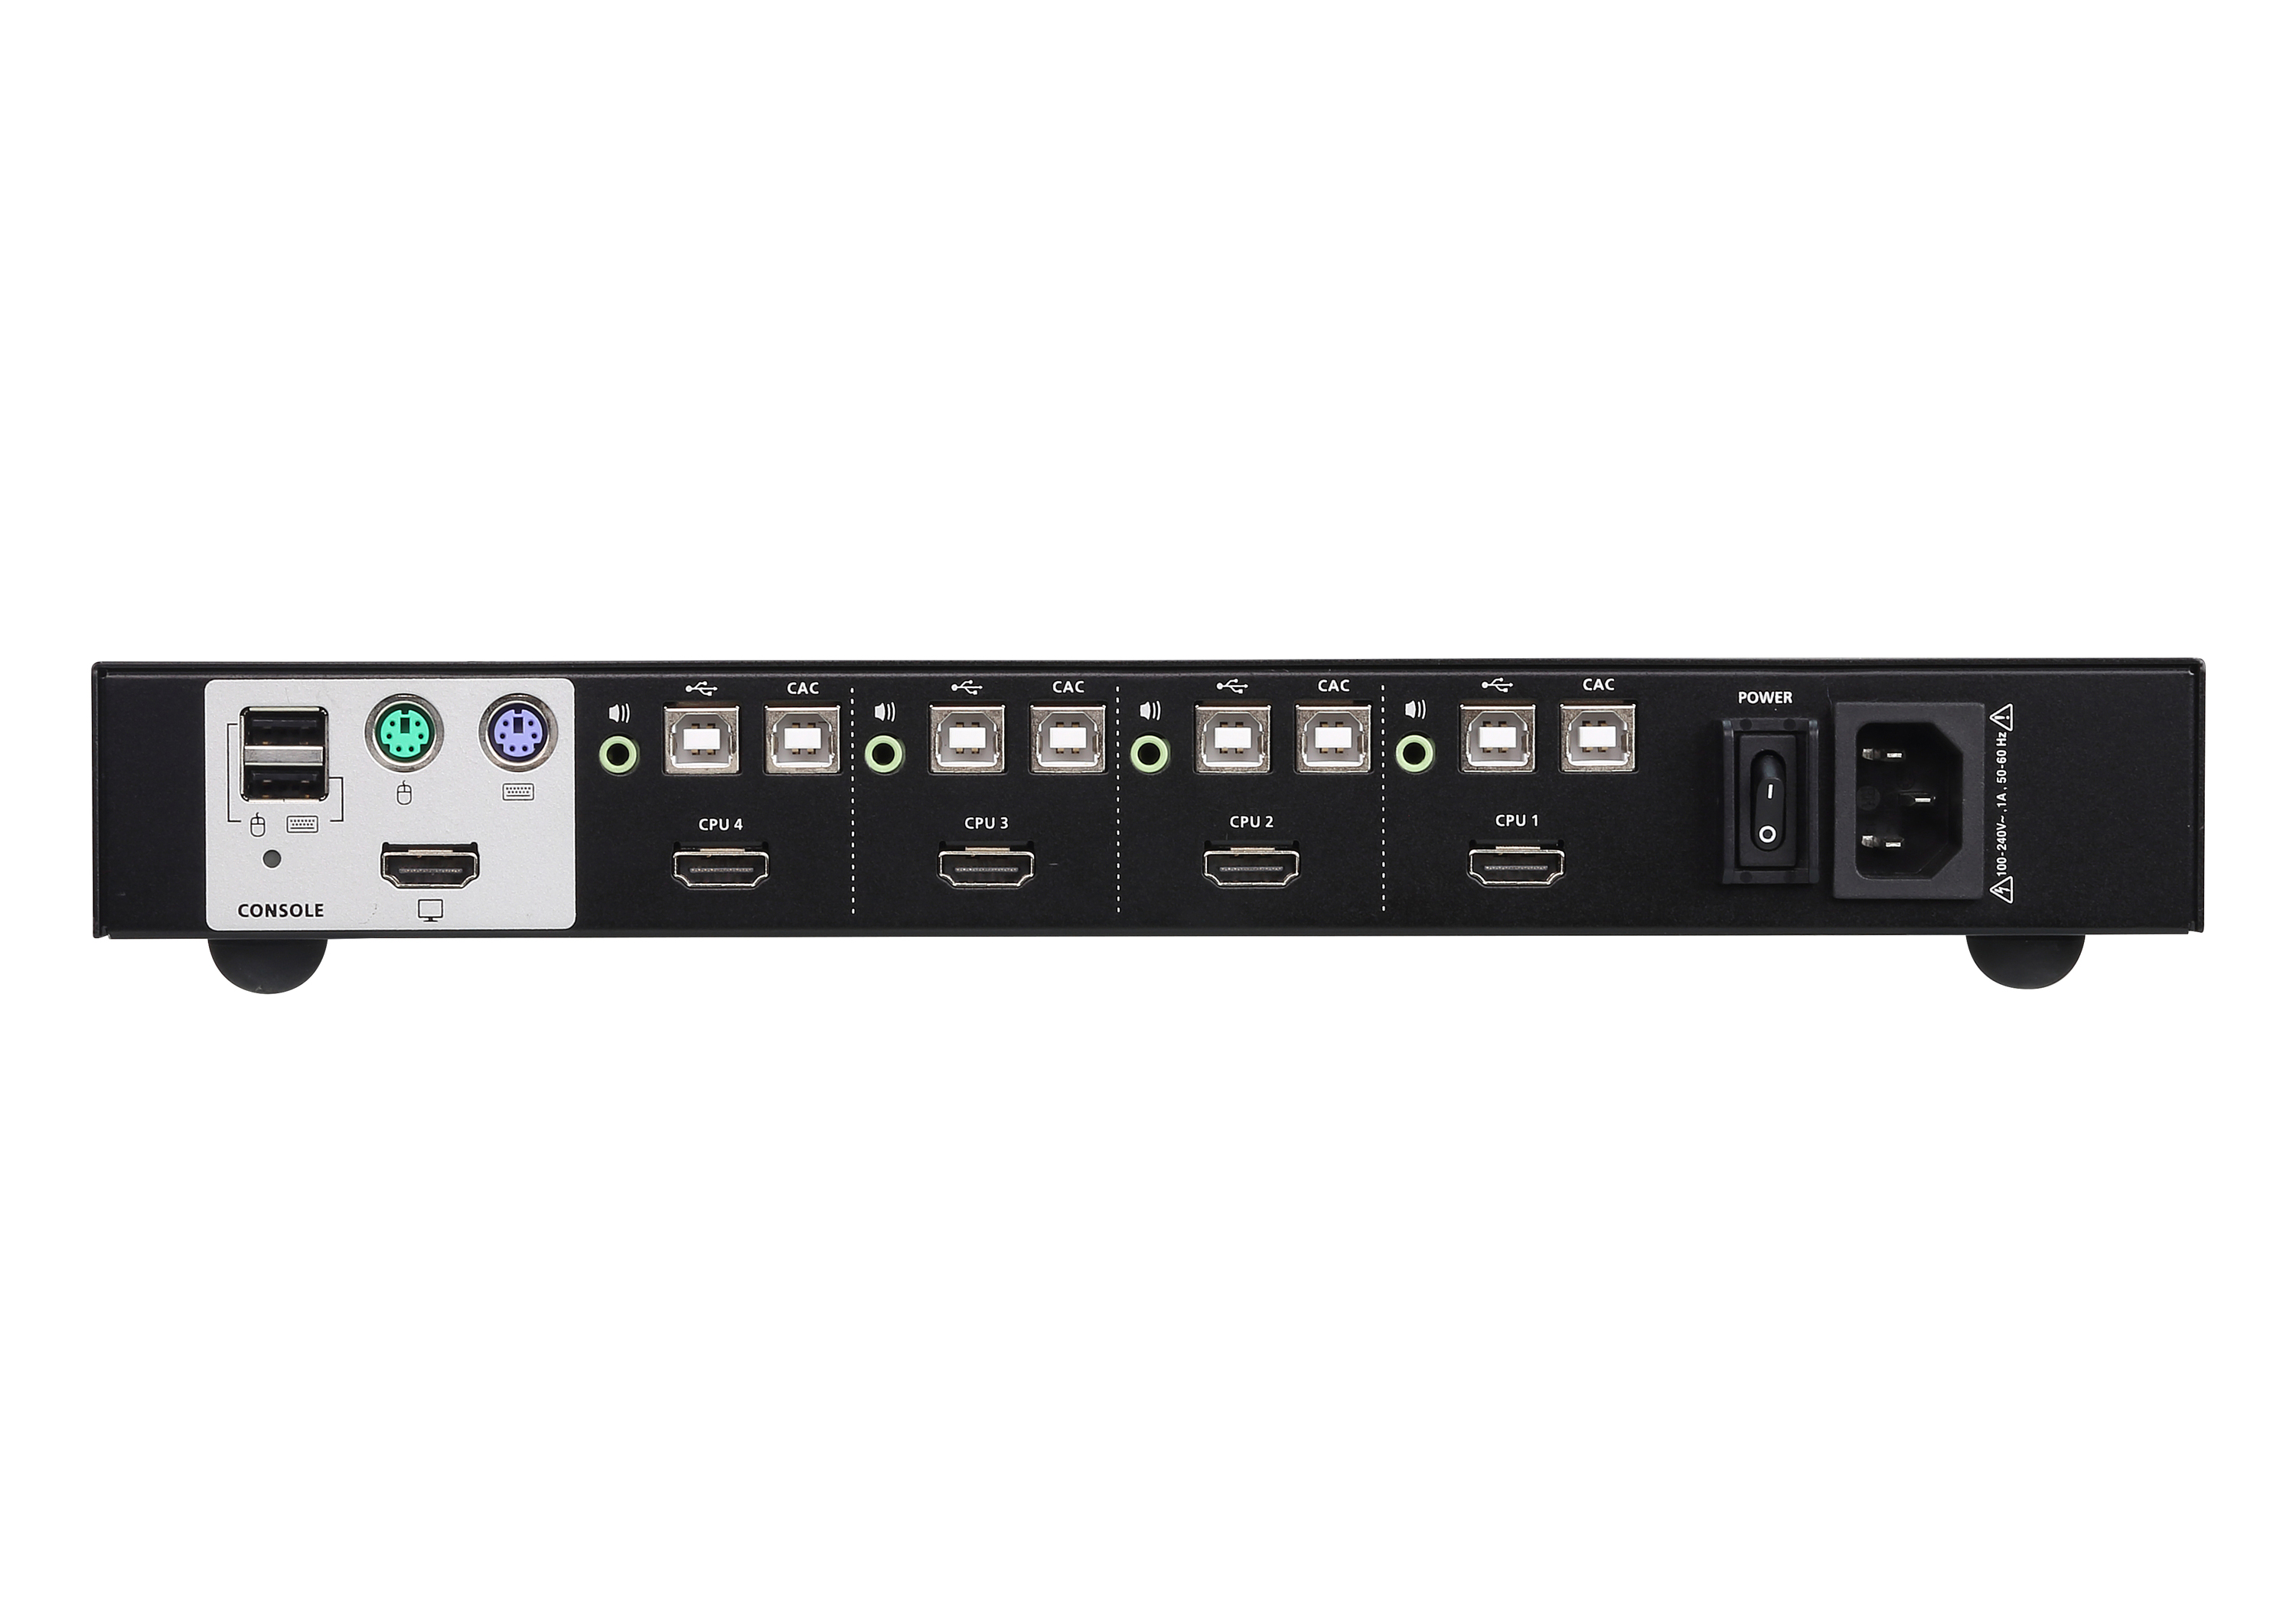 4-Port USB HDMI Secure KVM Switch (PSS PP v3.0 konform)-2